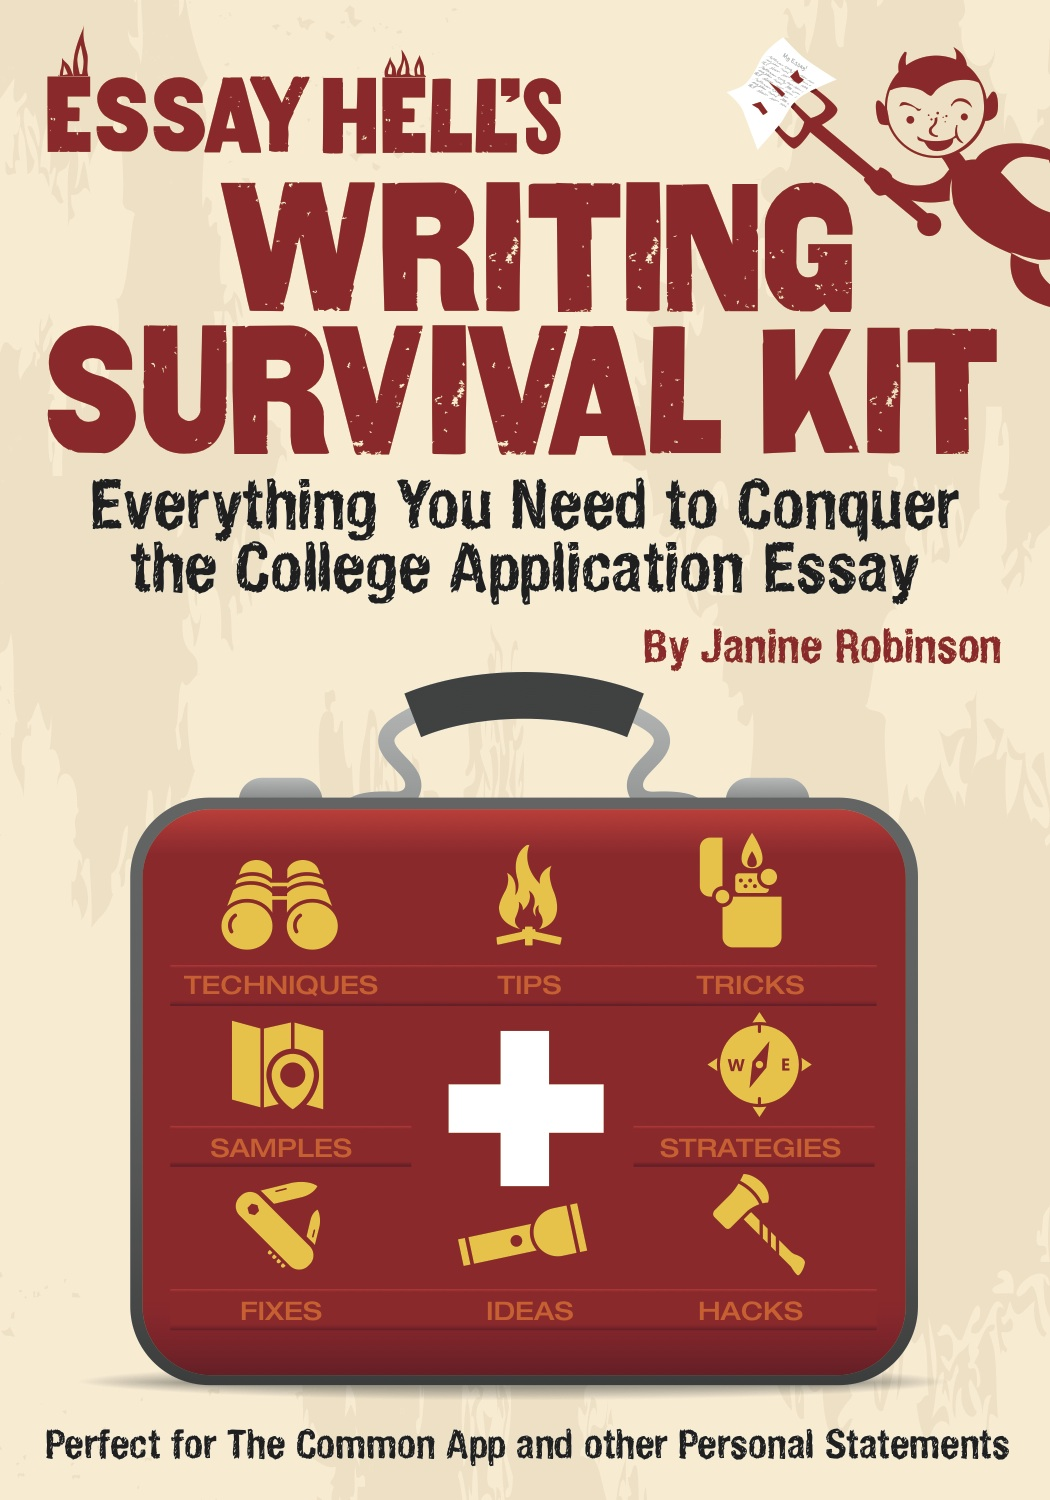 essay hell u0026 39 s new writing survival kit